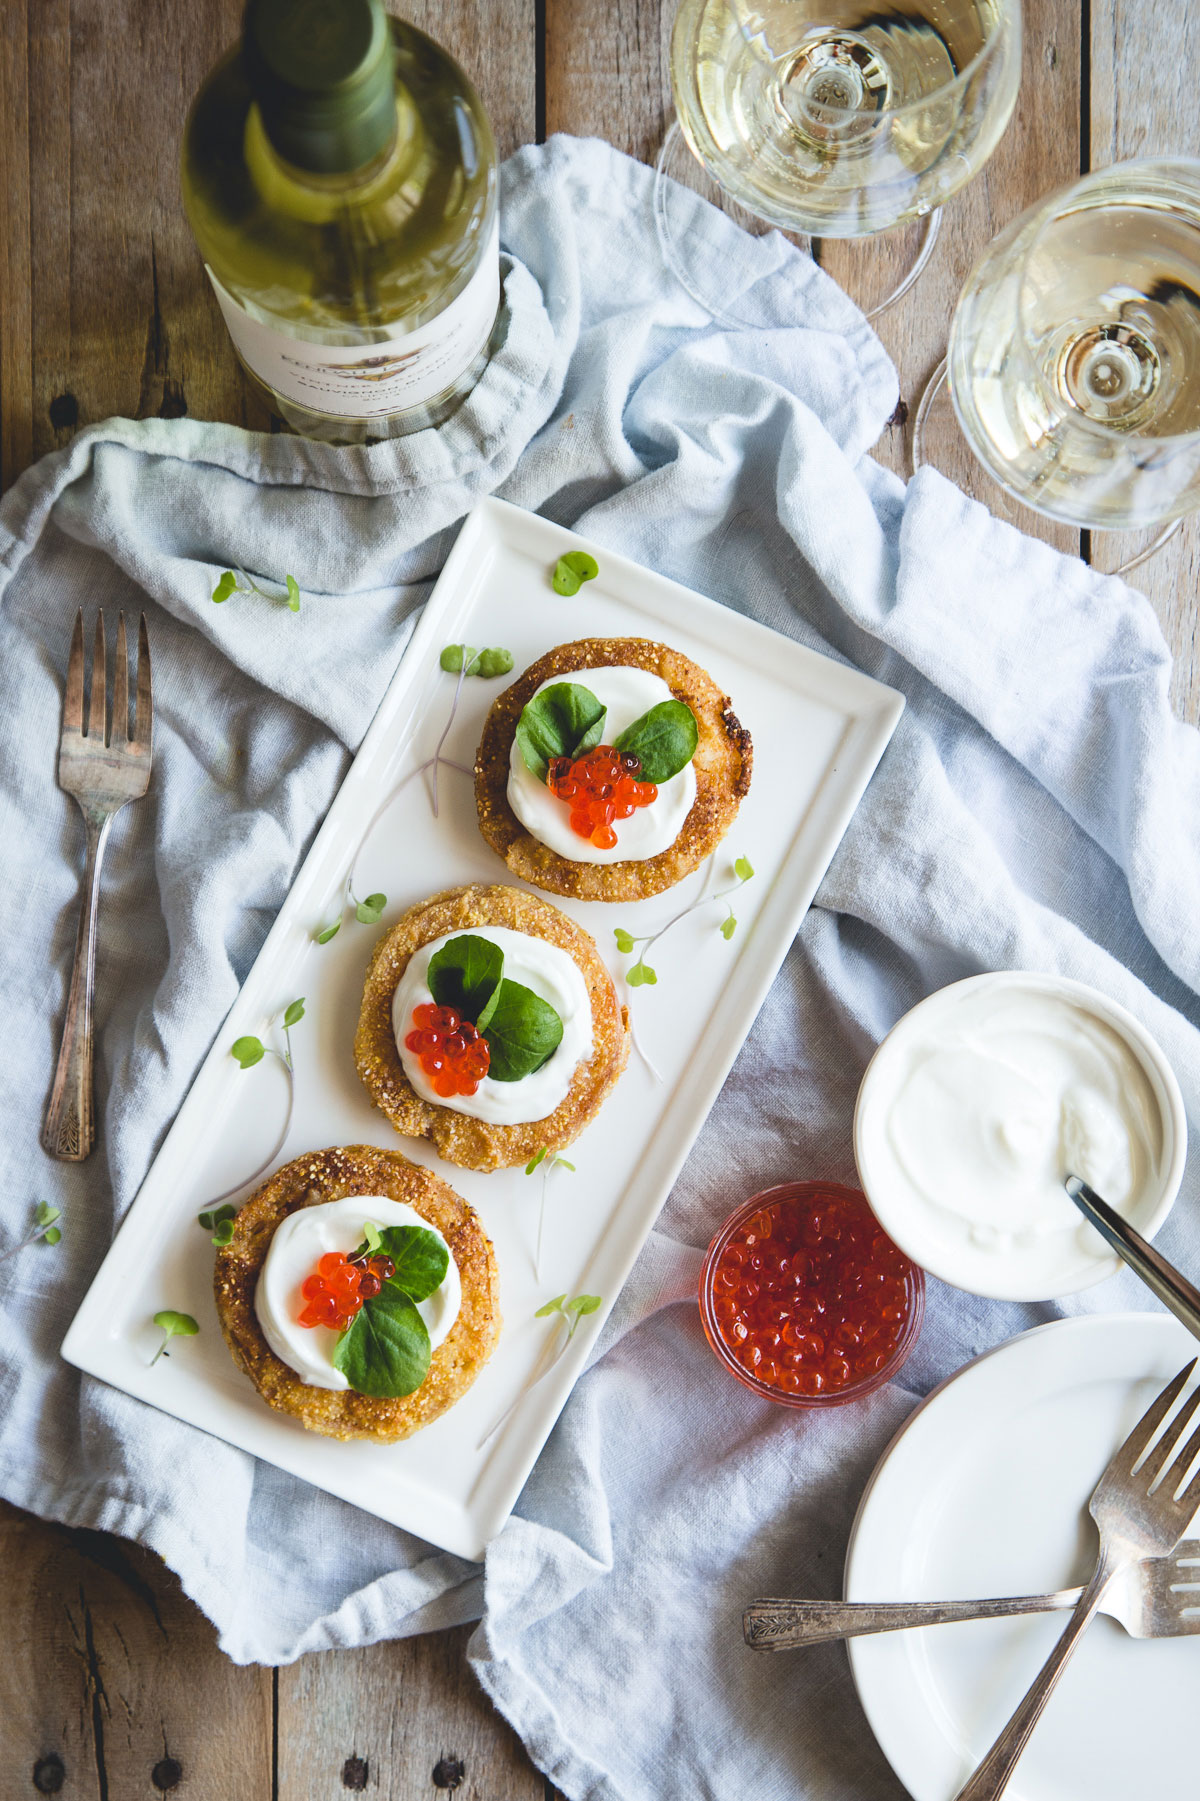 Want to make this classic even better? Try pairing this fried green tomatoes with fromage blanc with our Kendall-Jackson Sauvignon Blanc!